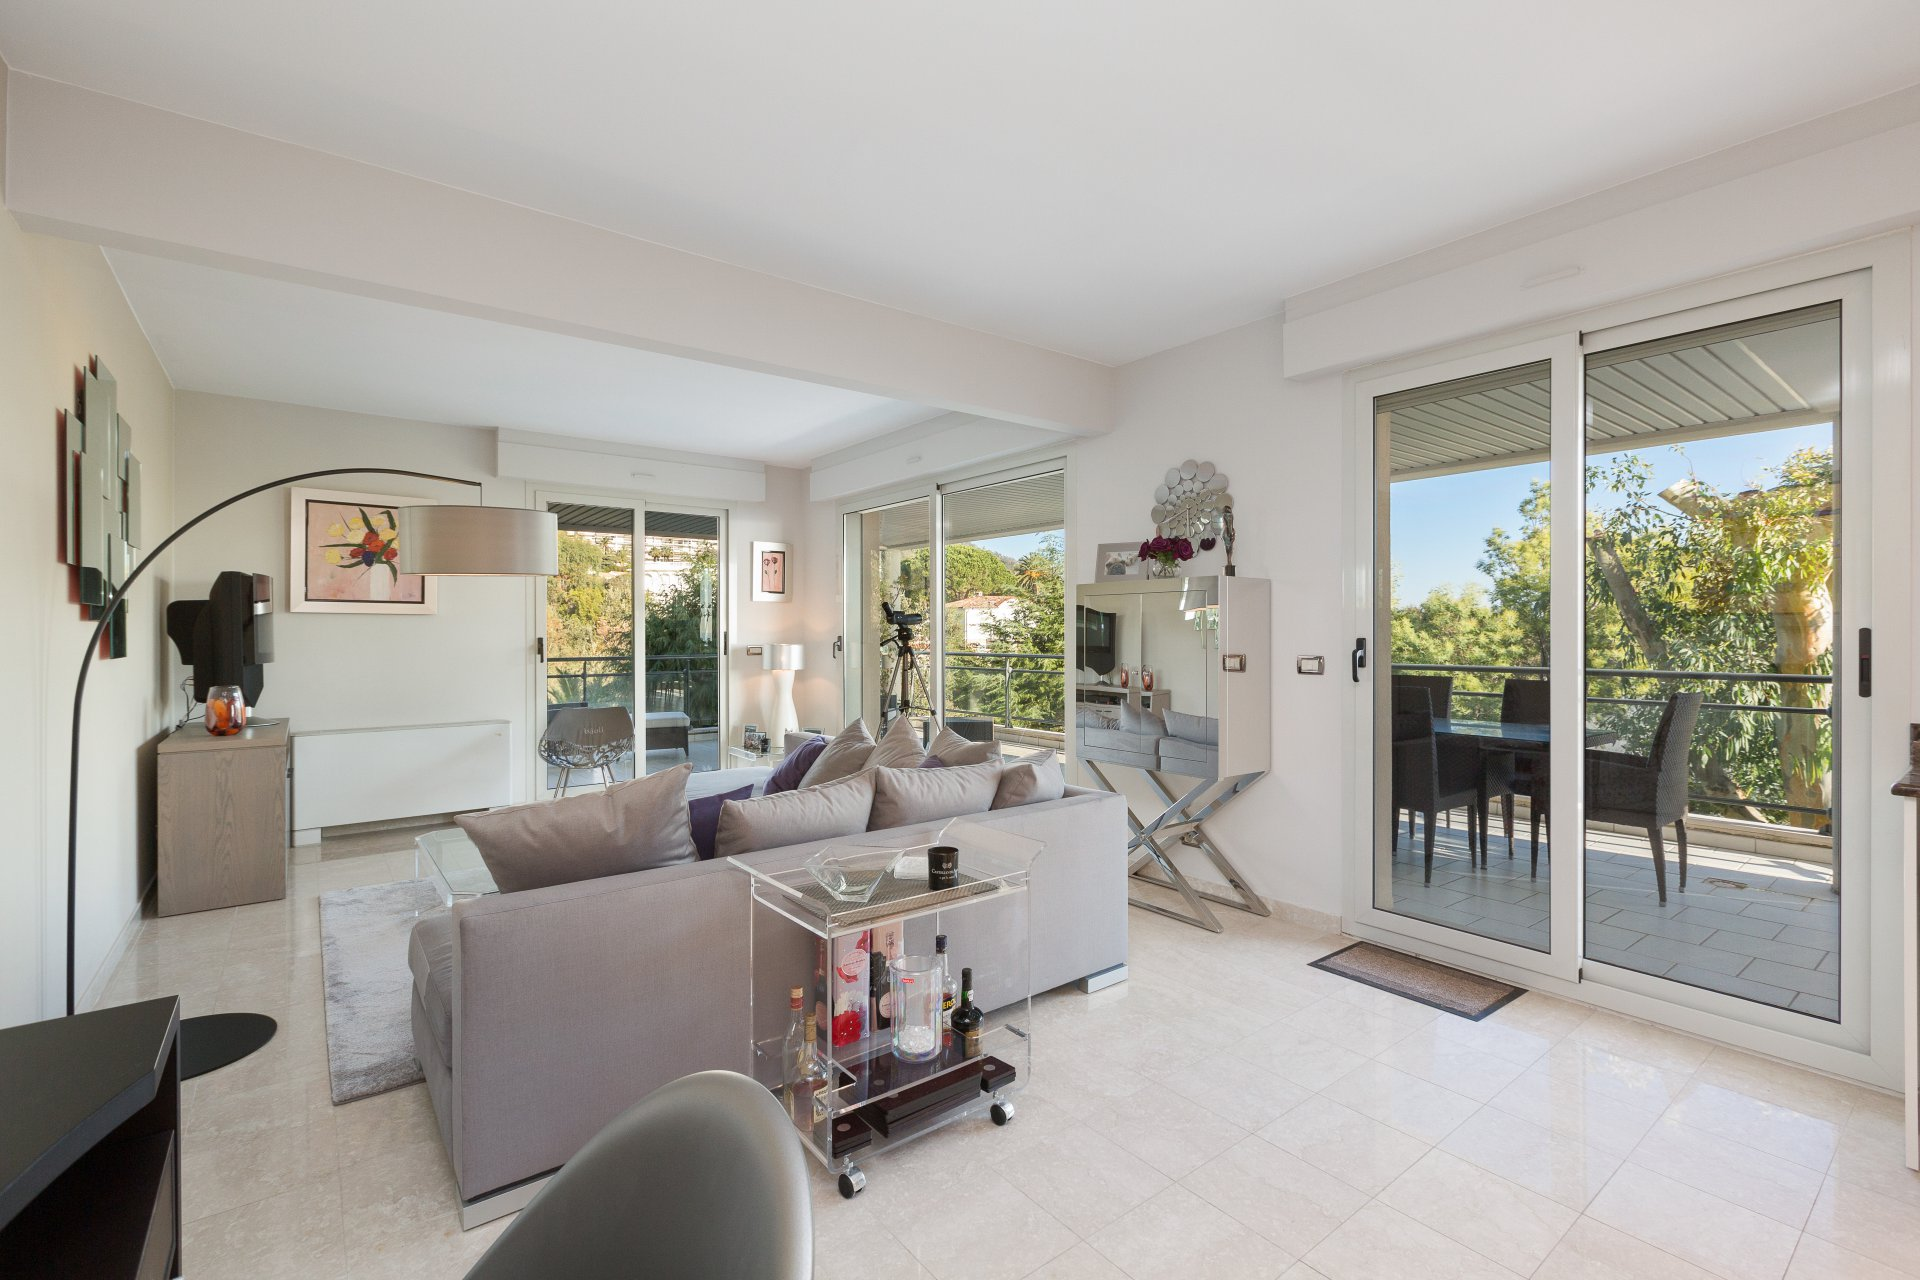 Ad Sale Apartment Cannes  06400   3 Rooms V4845ca